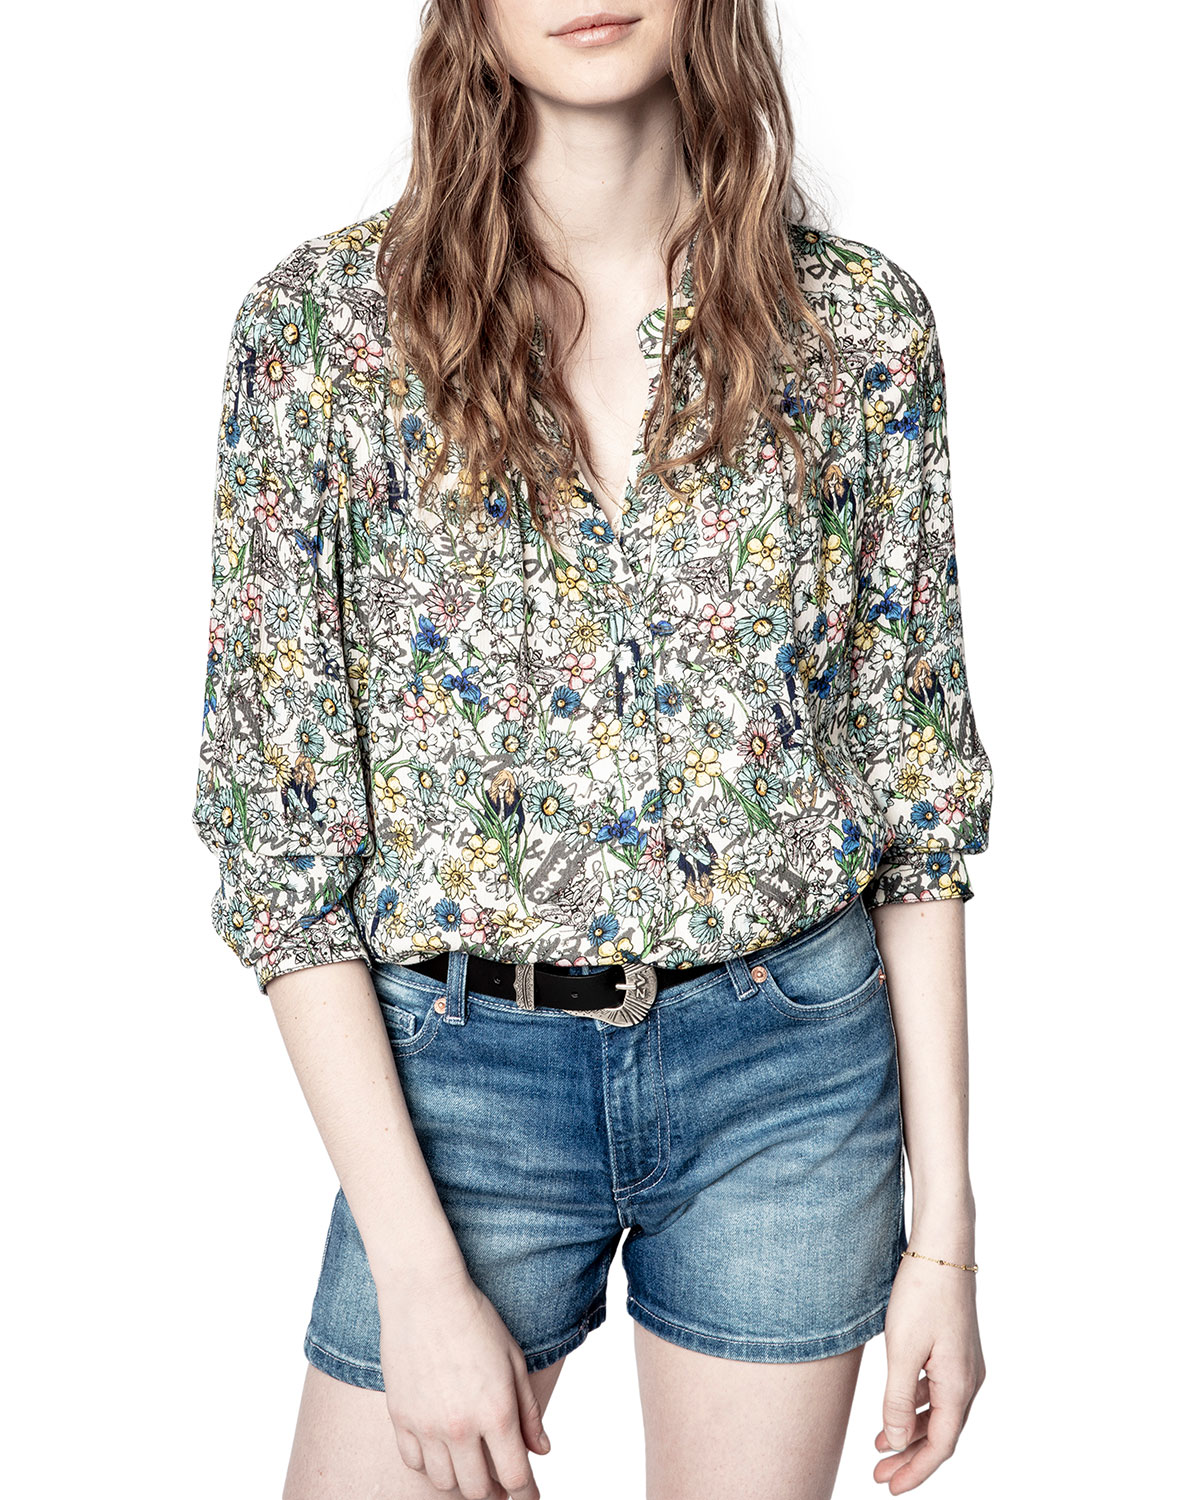 Zadig & Voltaire TINK CRINKLE FLOWER TUNIC TOP